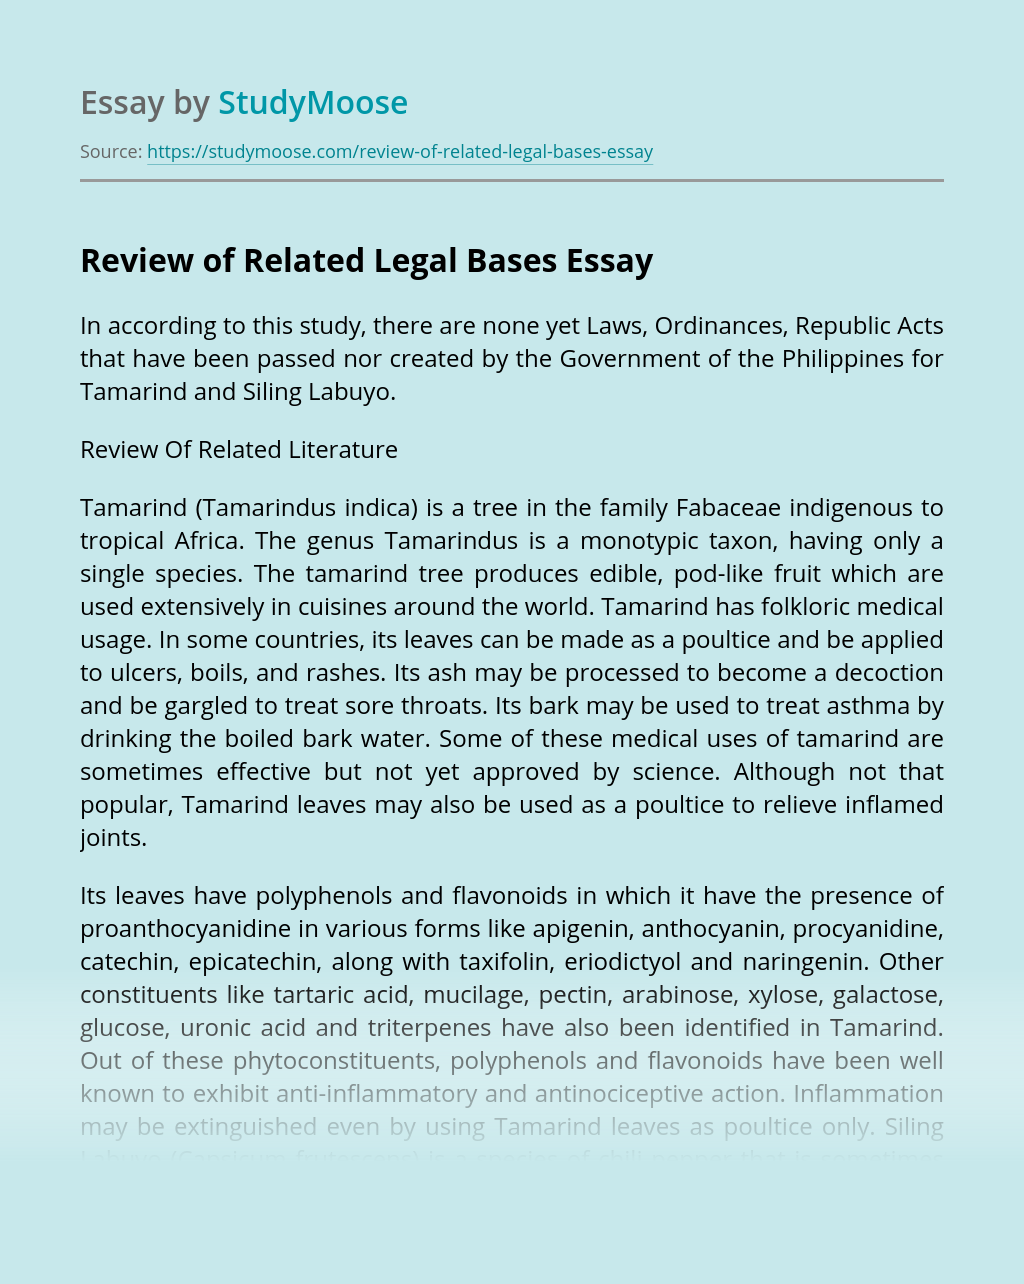 Review of Related Legal Bases